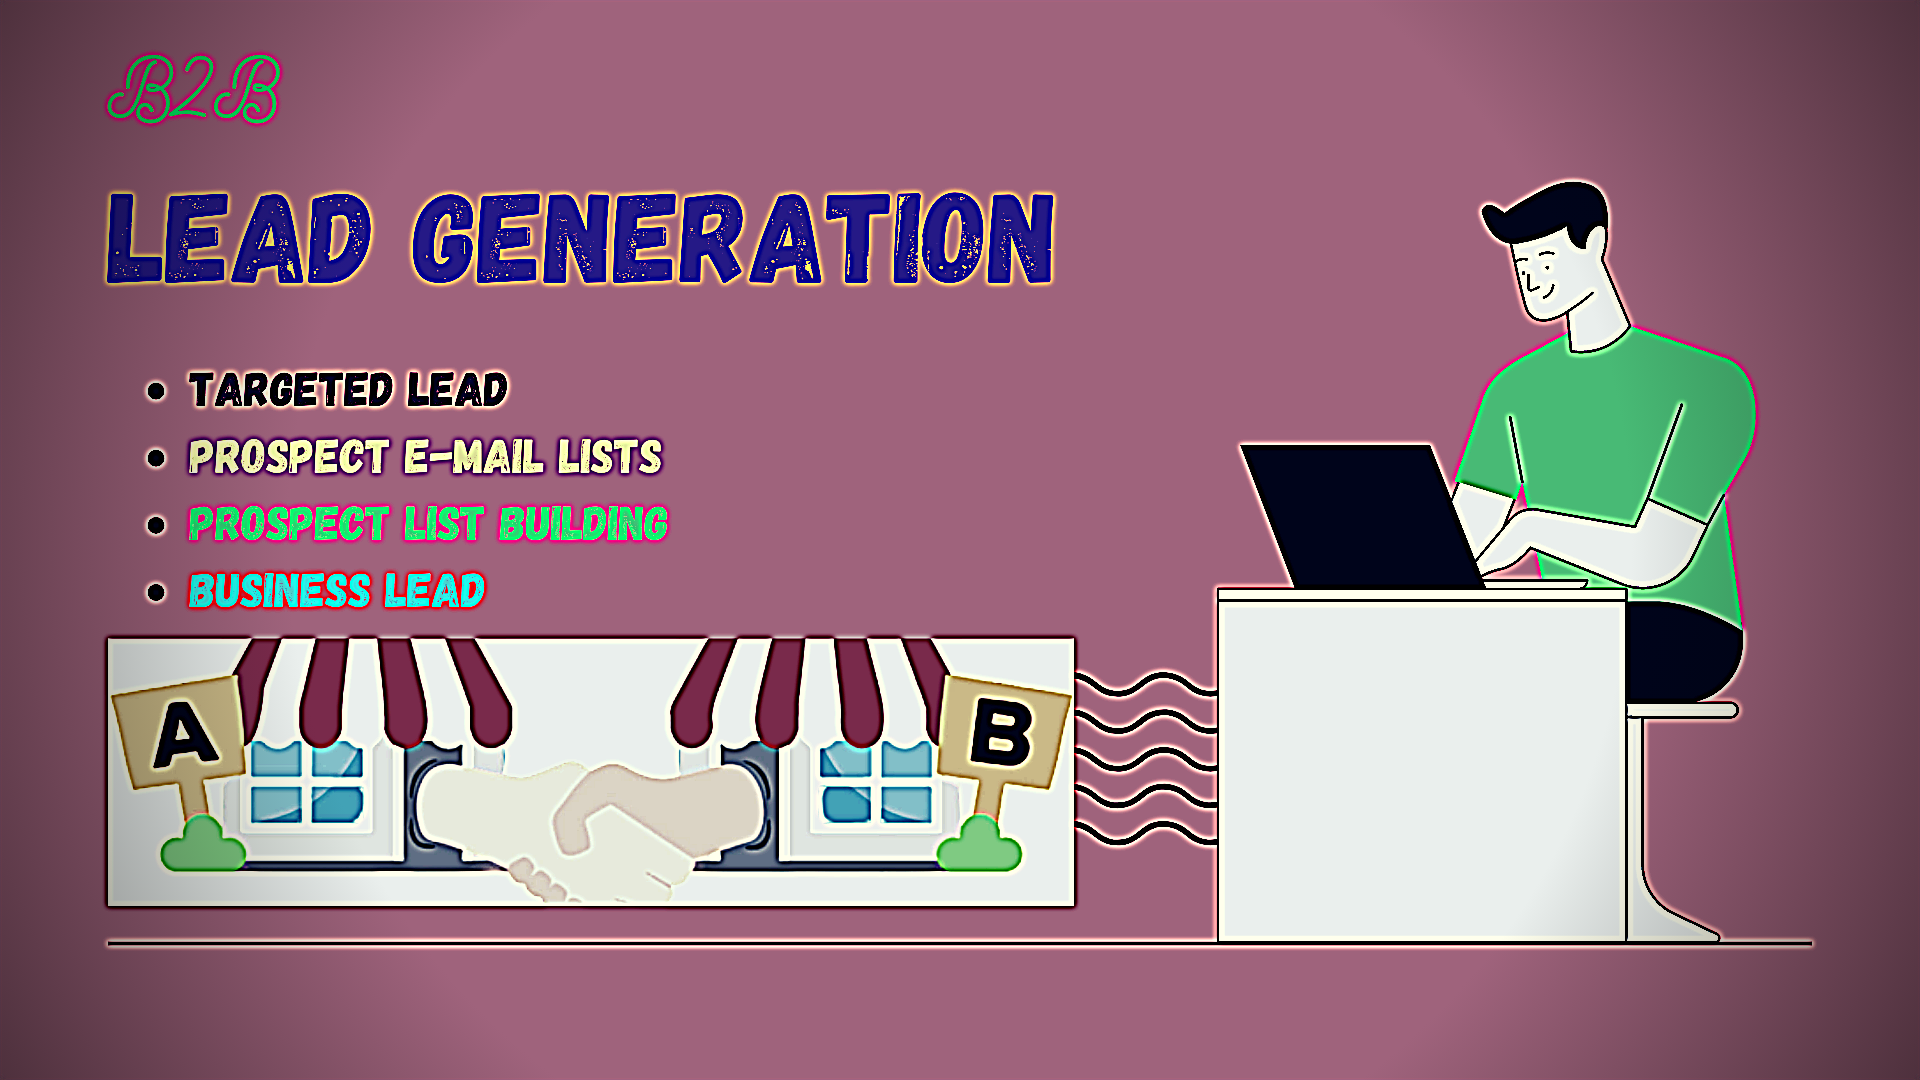 I will create 500 b2b lead generation and prospect email list building